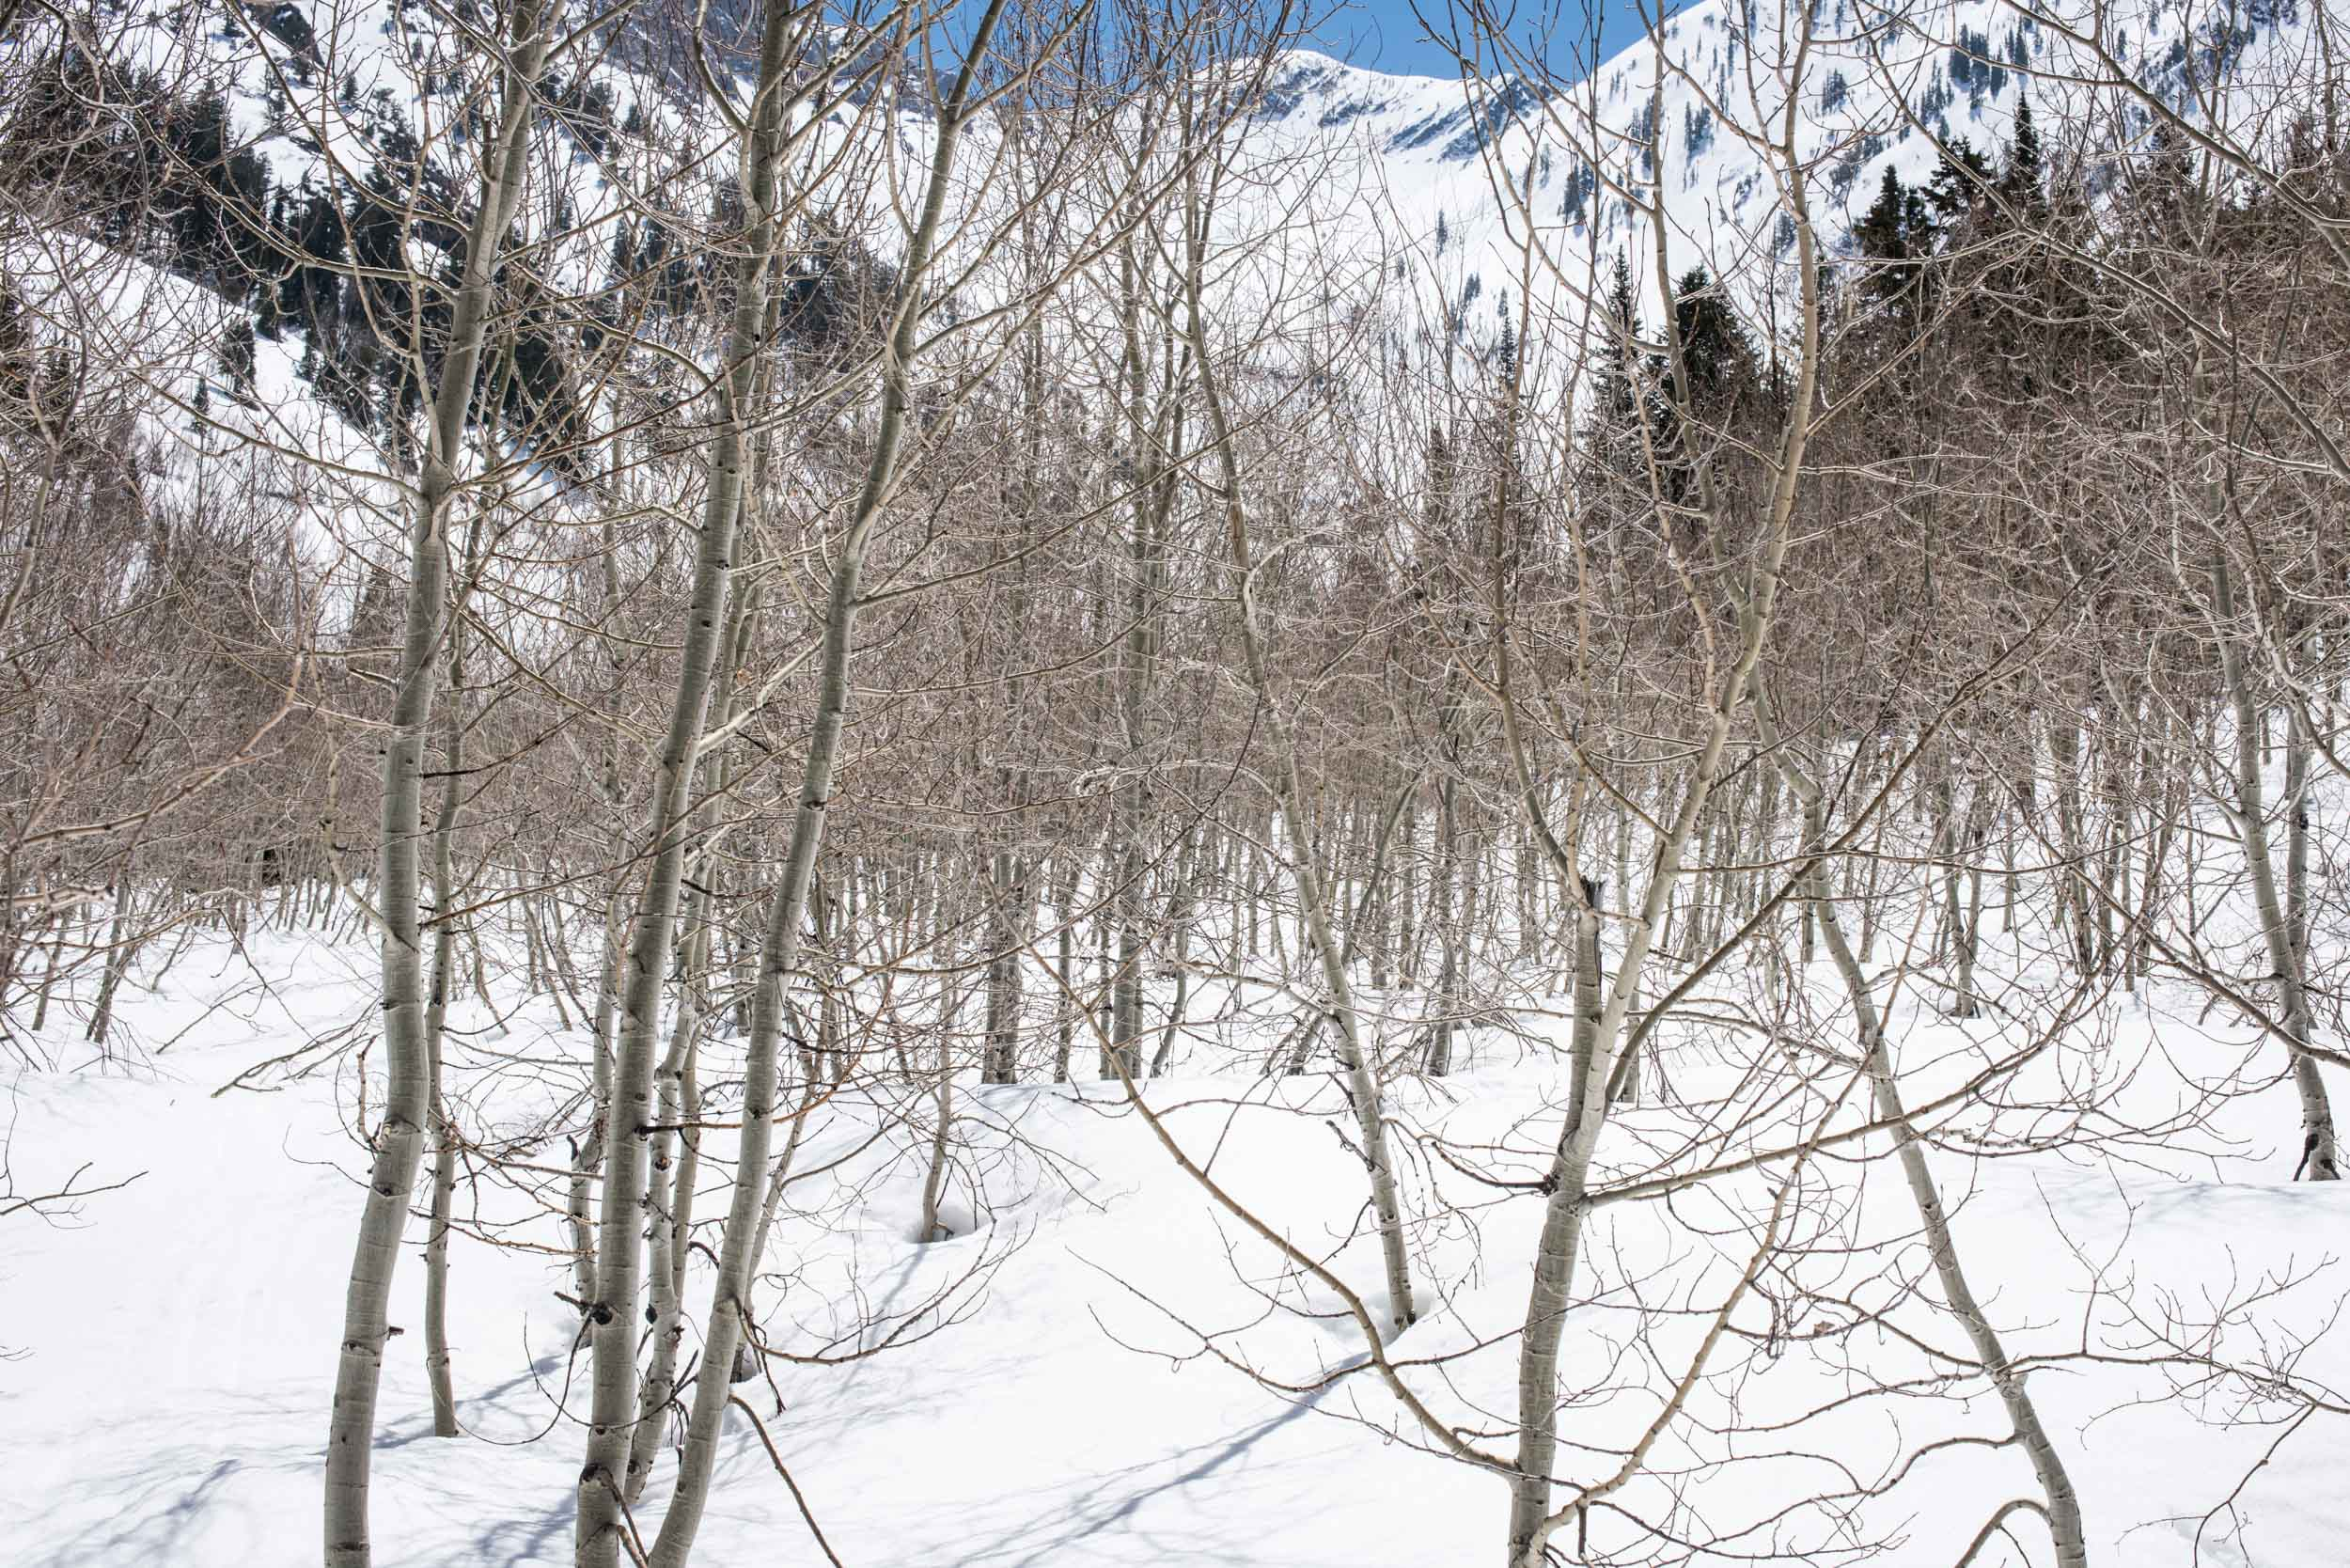 The snowpack above 8,000' is vital to the humans in the valley below. A young aspen grove in the snow pack in Mineral Fork cirque, Little Cottonwood Canyon, Wasatch Range, Lone Peak Wilderness, Utah.